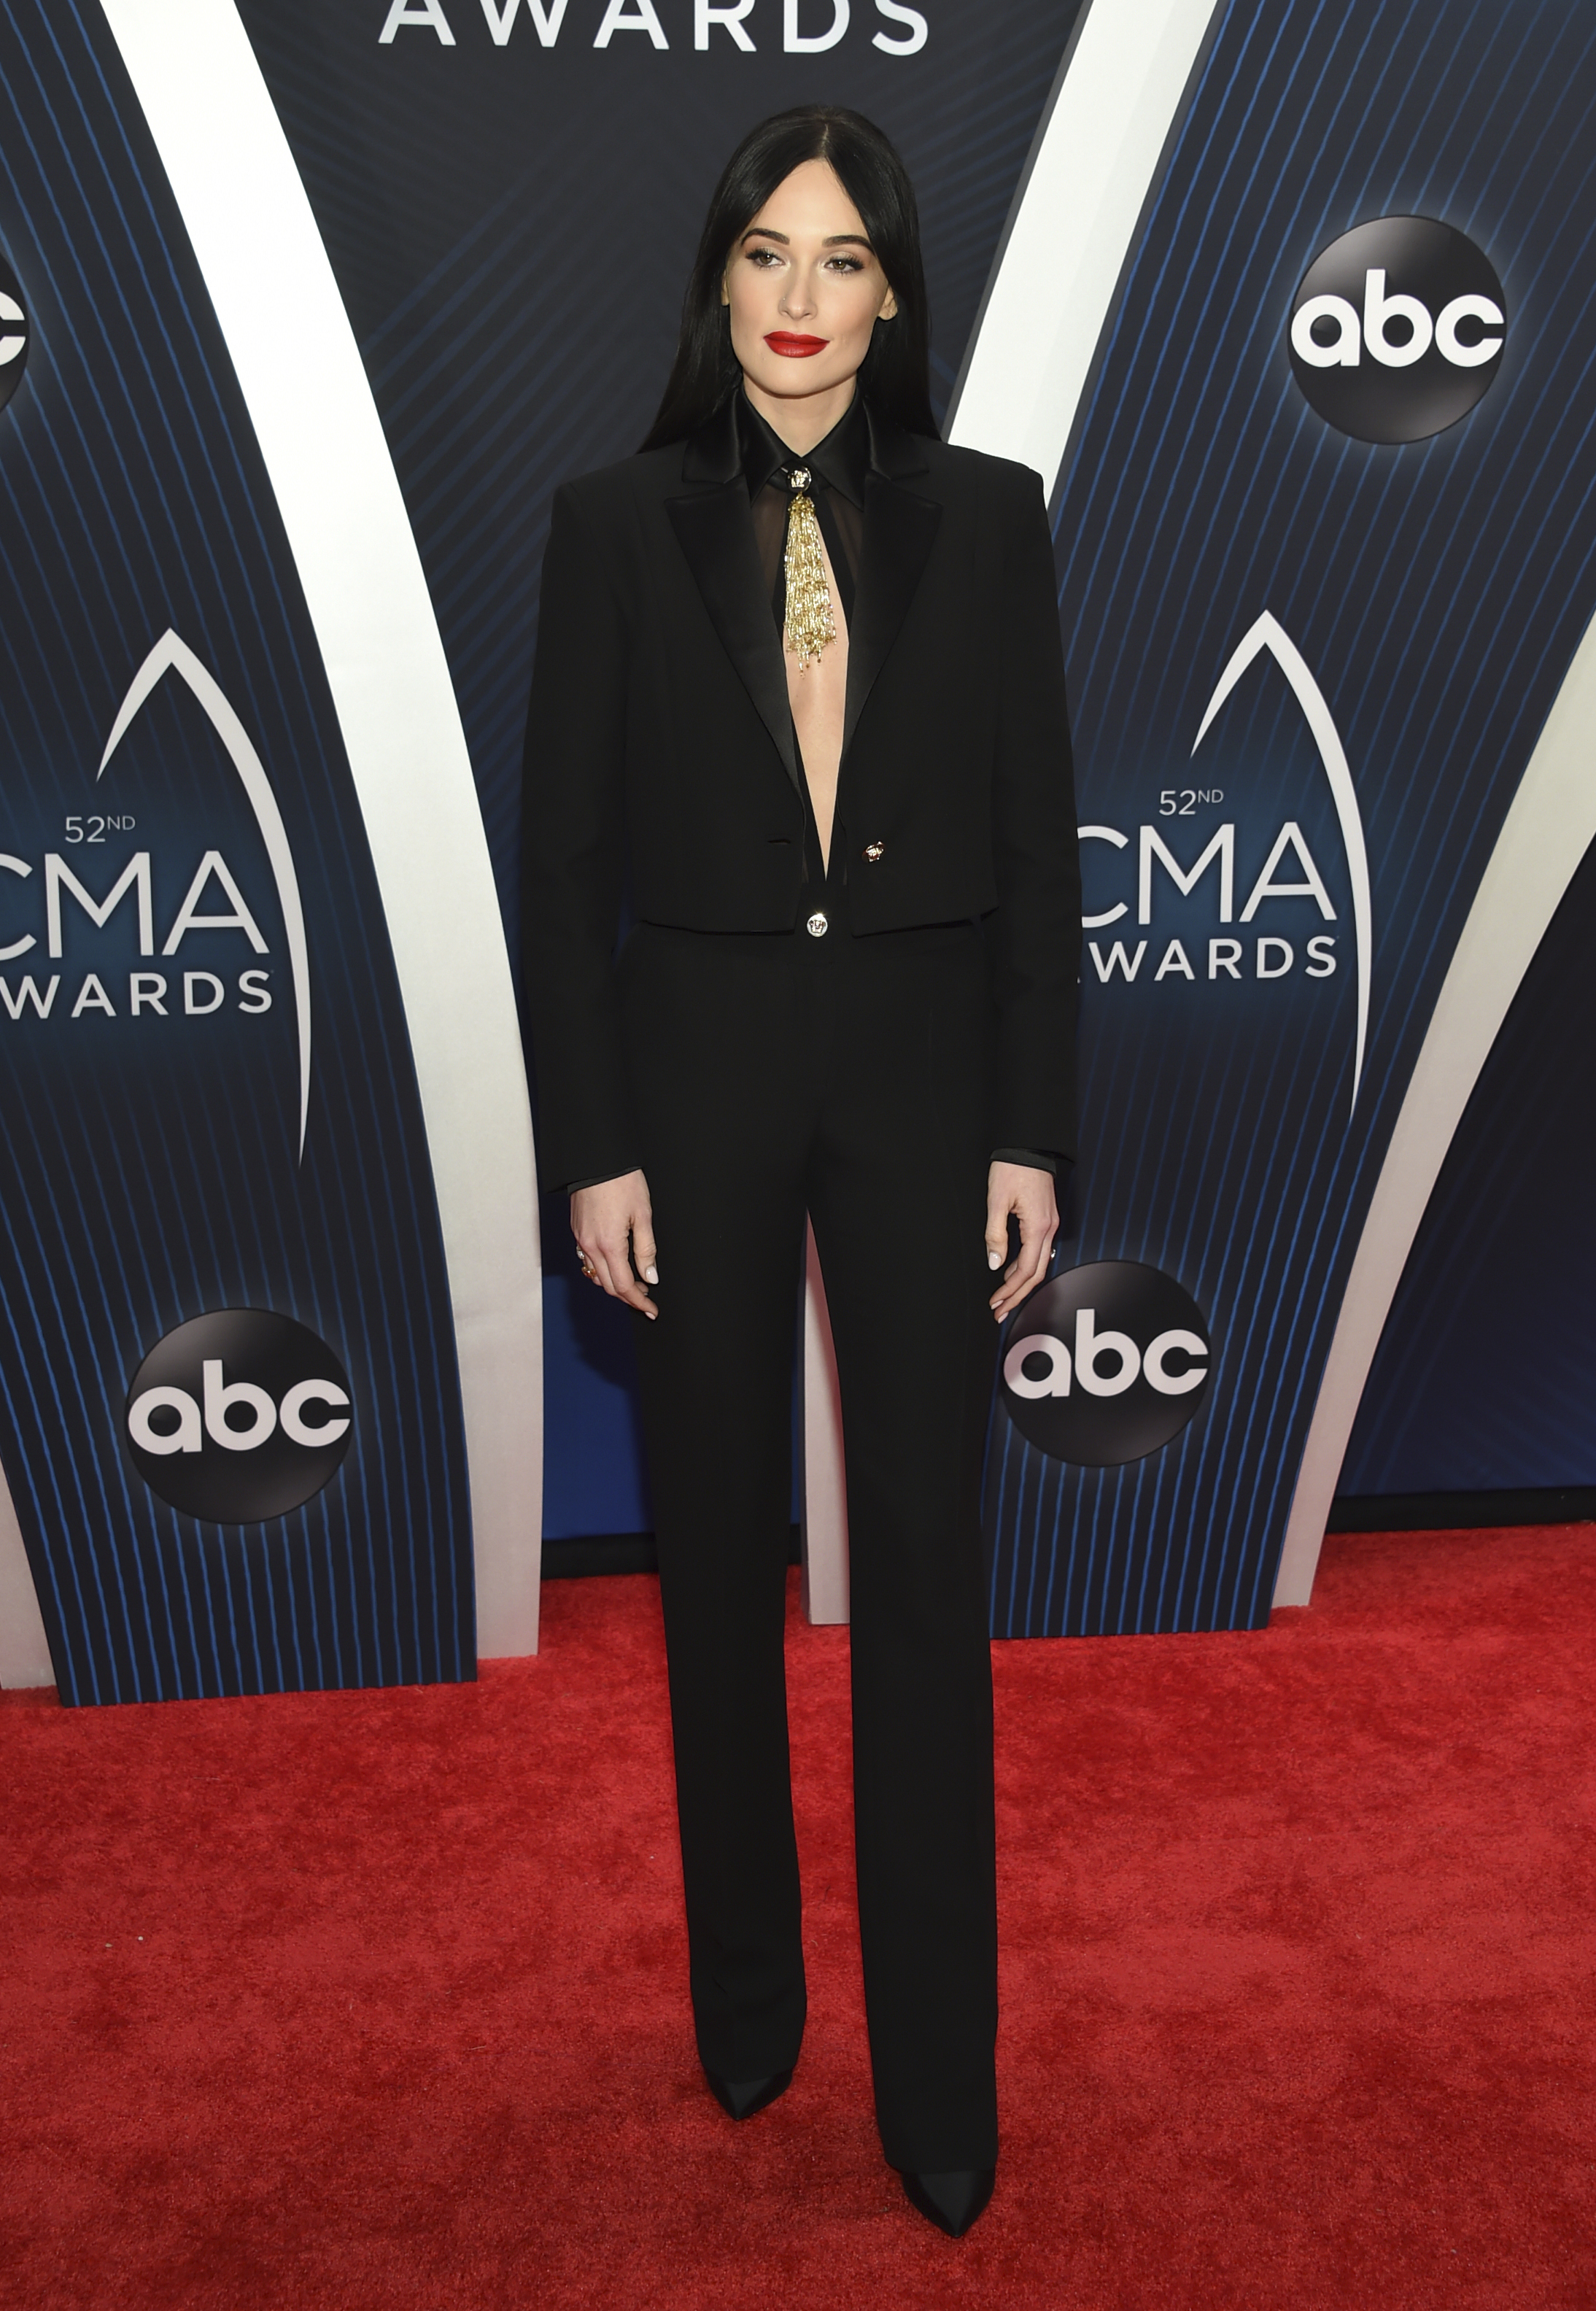 "<div class=""meta image-caption""><div class=""origin-logo origin-image ap""><span>AP</span></div><span class=""caption-text"">Kacey Musgraves arrives at the 52nd annual CMA Awards at Bridgestone Arena on Wednesday, Nov. 14, 2018, in Nashville, Tenn. (Photo by Evan Agostini/Invision/AP) (Evan Agostini/Invision/AP)</span></div>"